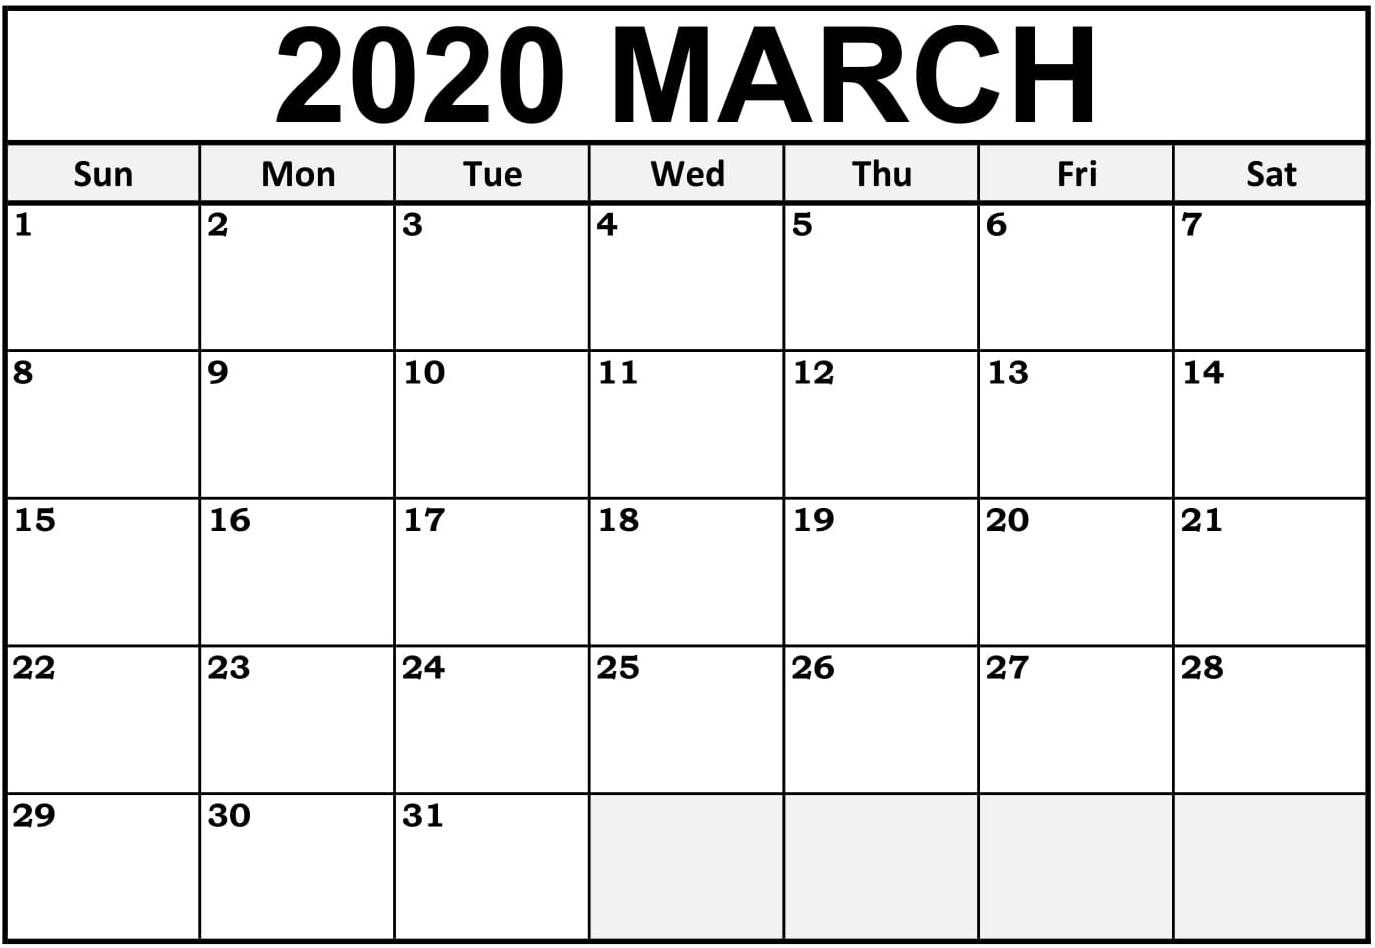 March 2020 Calendar Canada with National Holidays Set